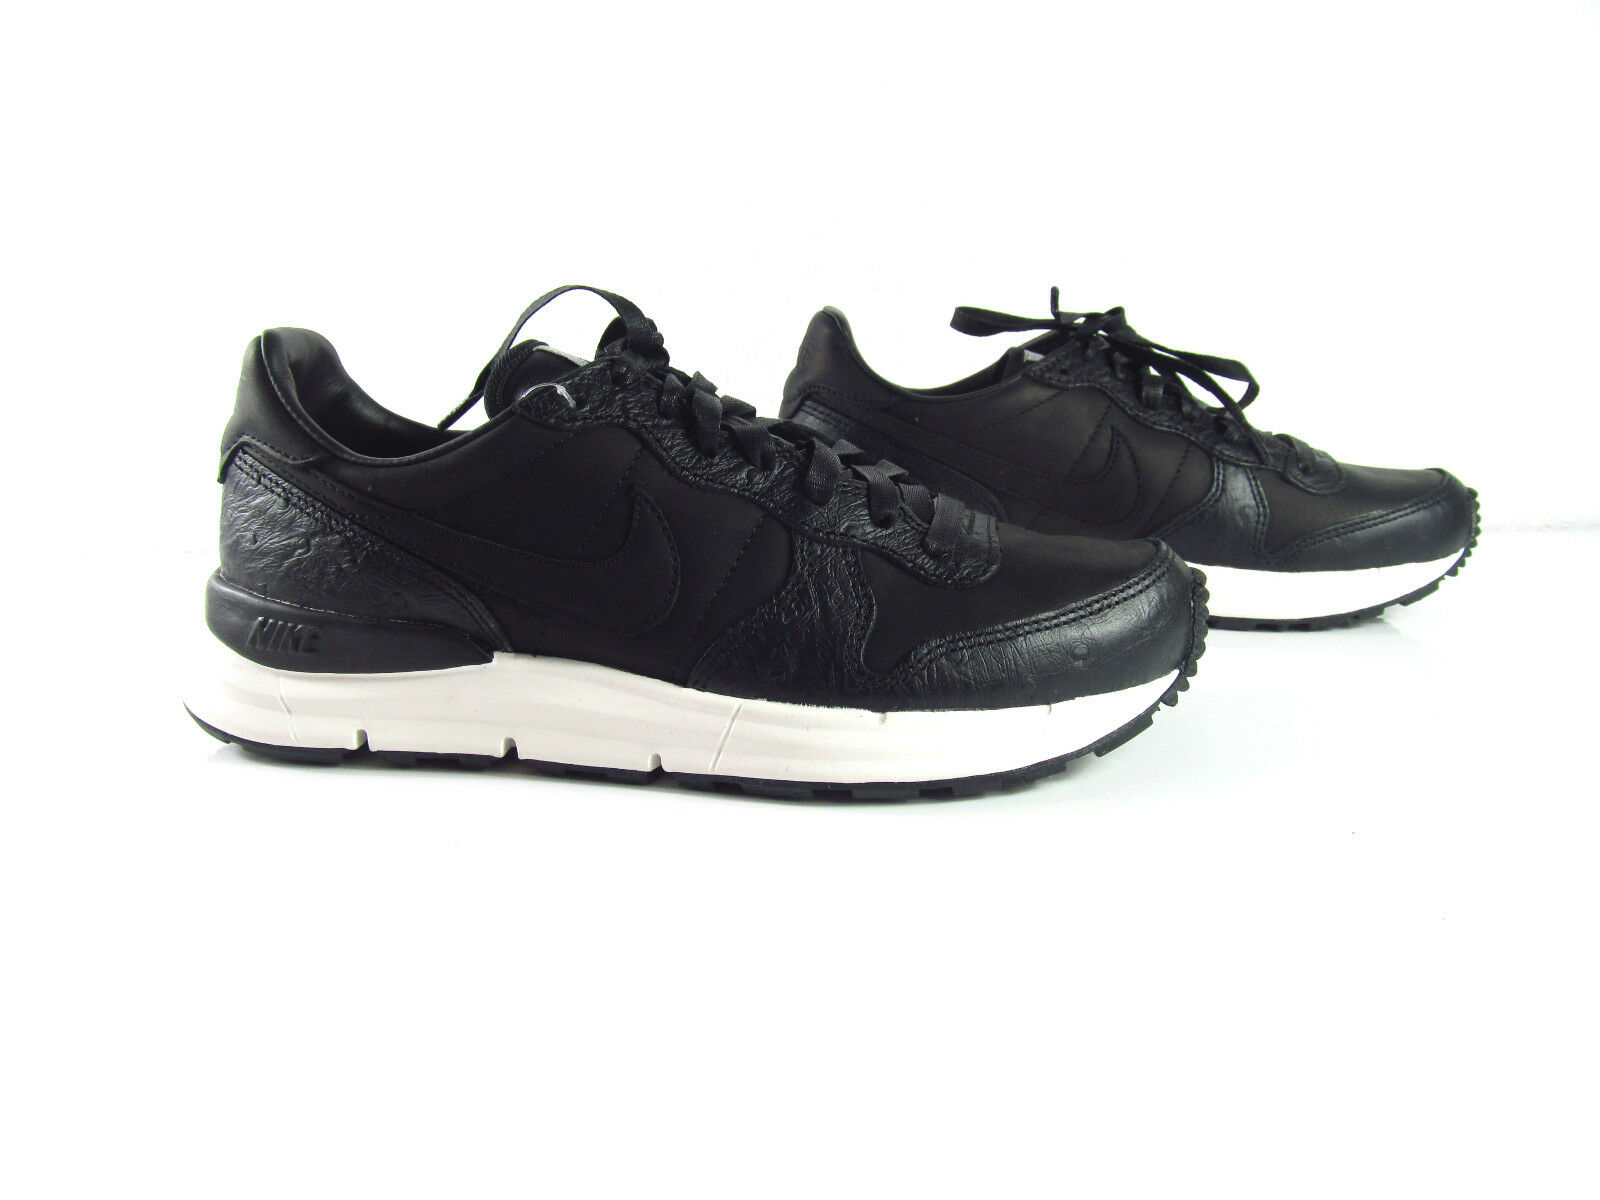 Nike Lab Lunar Lunarinternationalist Internationalist Sp Sophnet Ostrich Eur_45